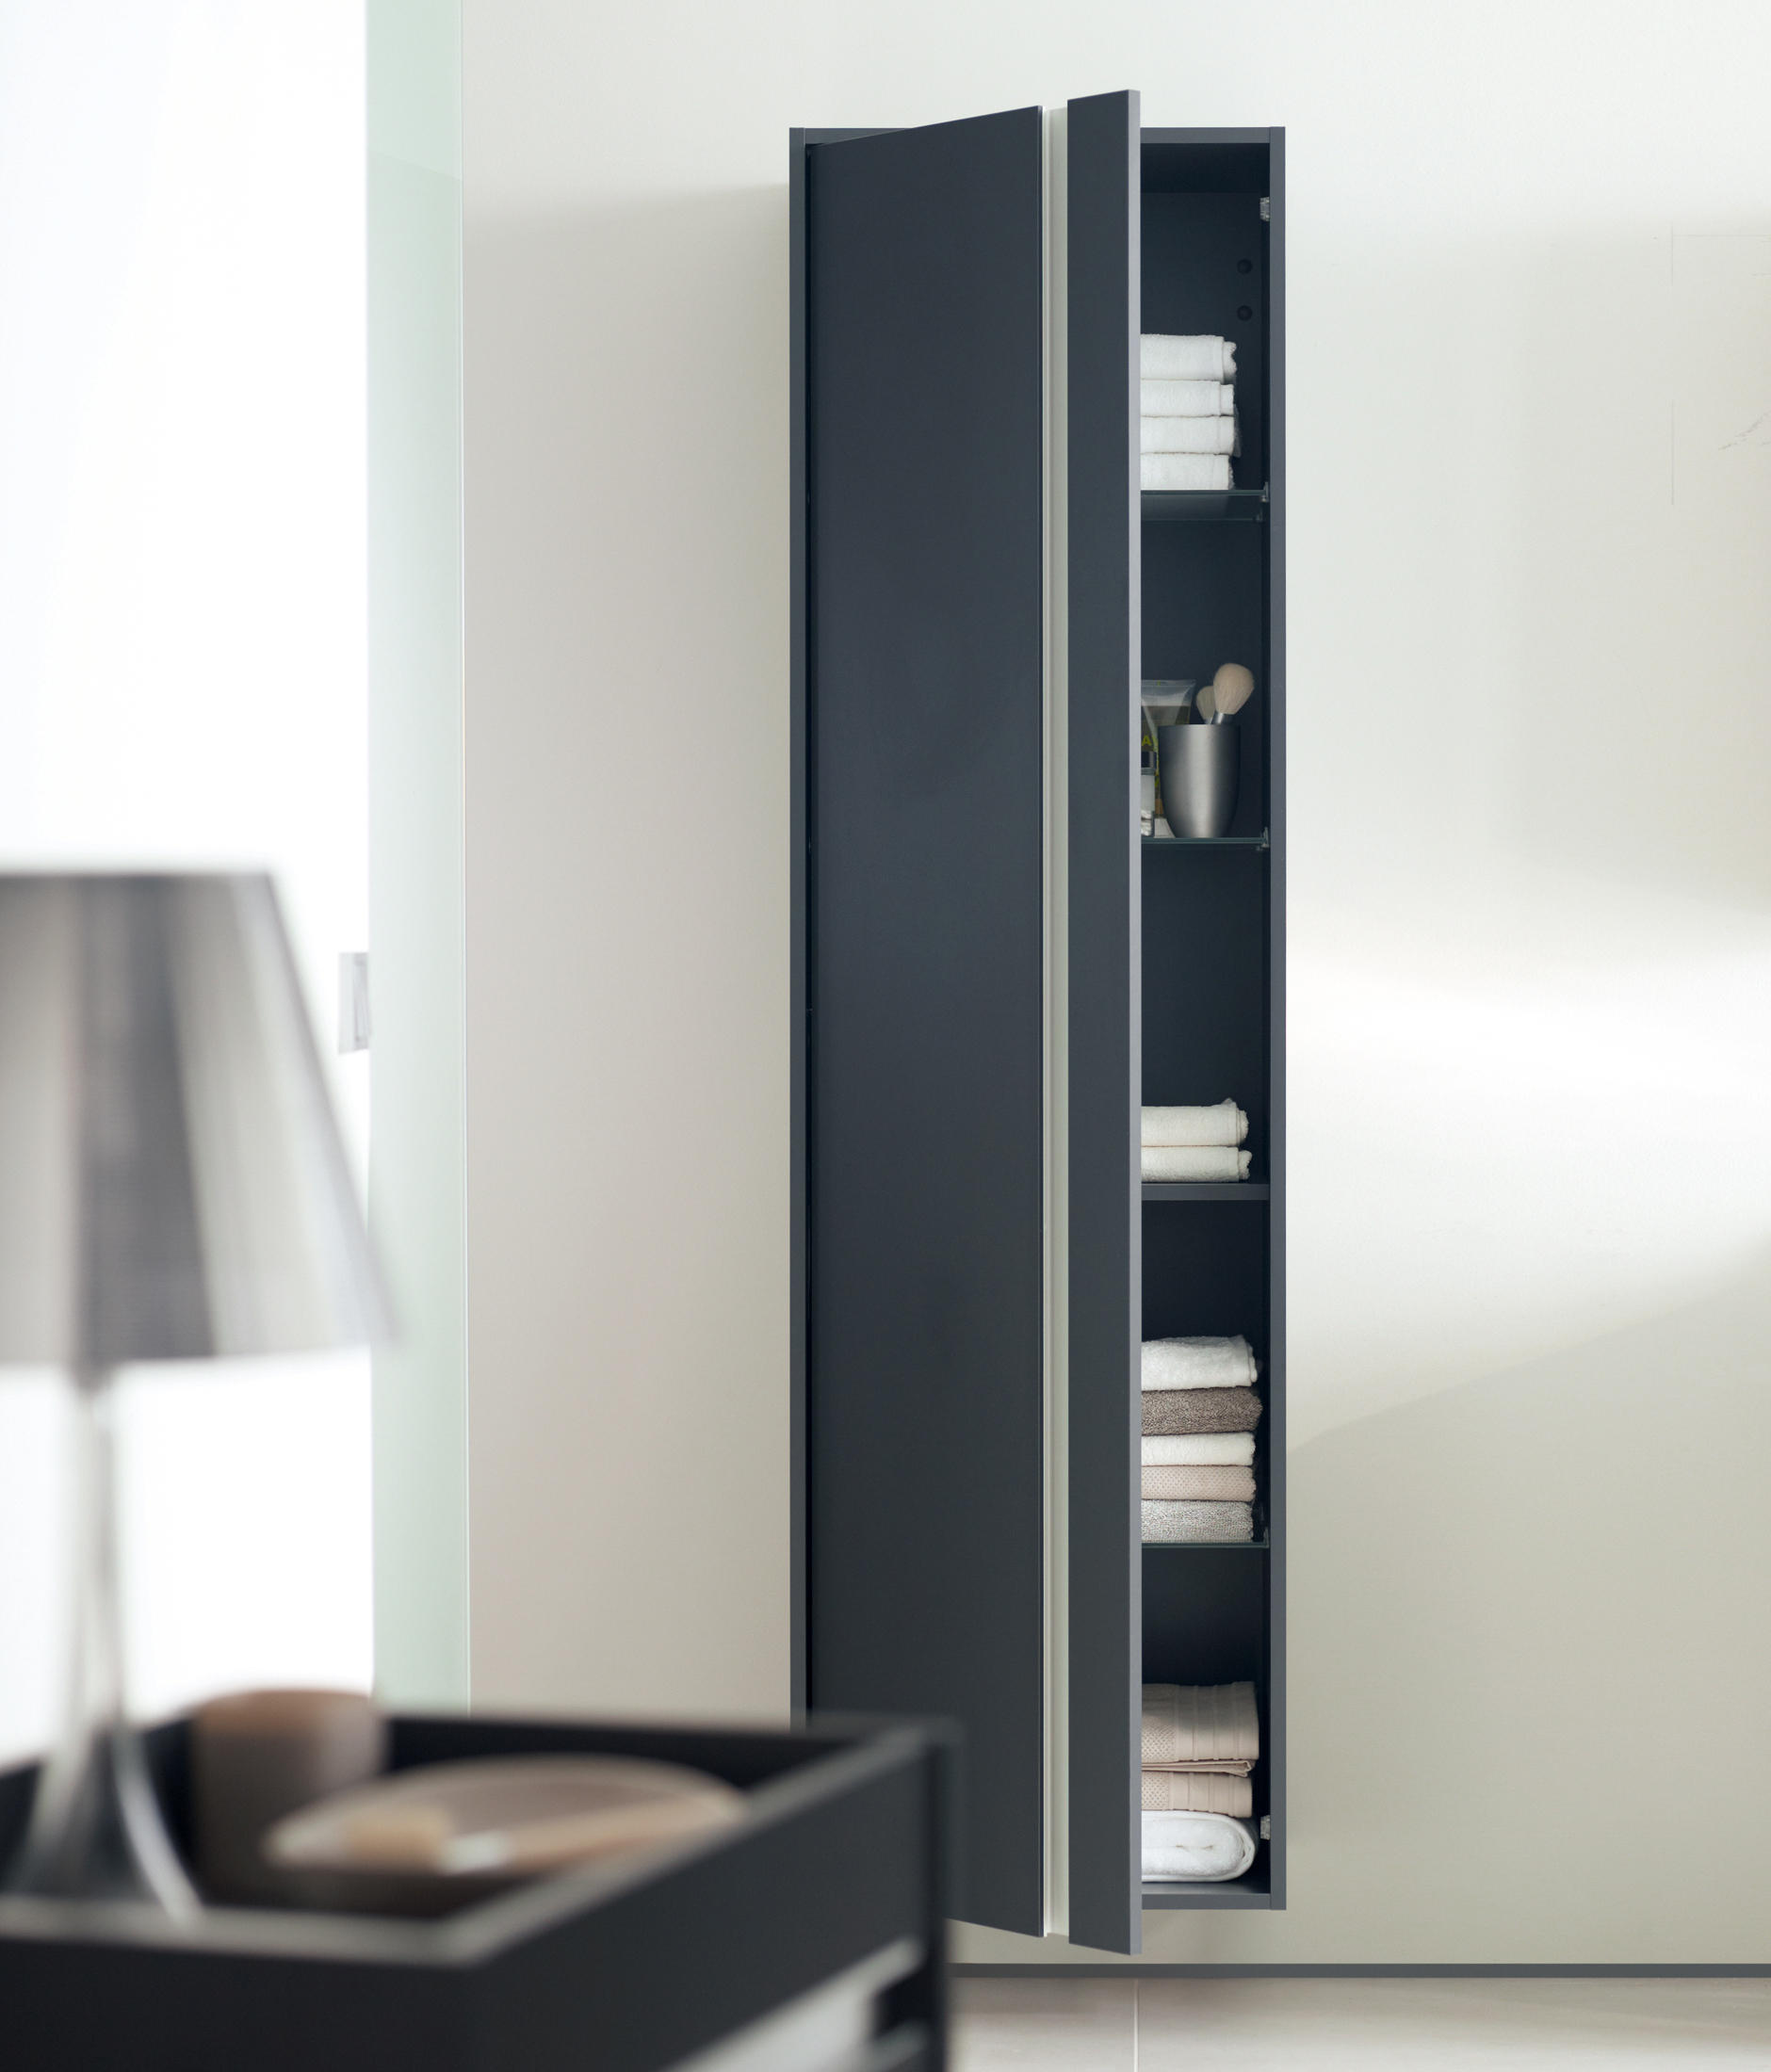 ketho vanity units with integrated console vanity units from duravit architonic. Black Bedroom Furniture Sets. Home Design Ideas